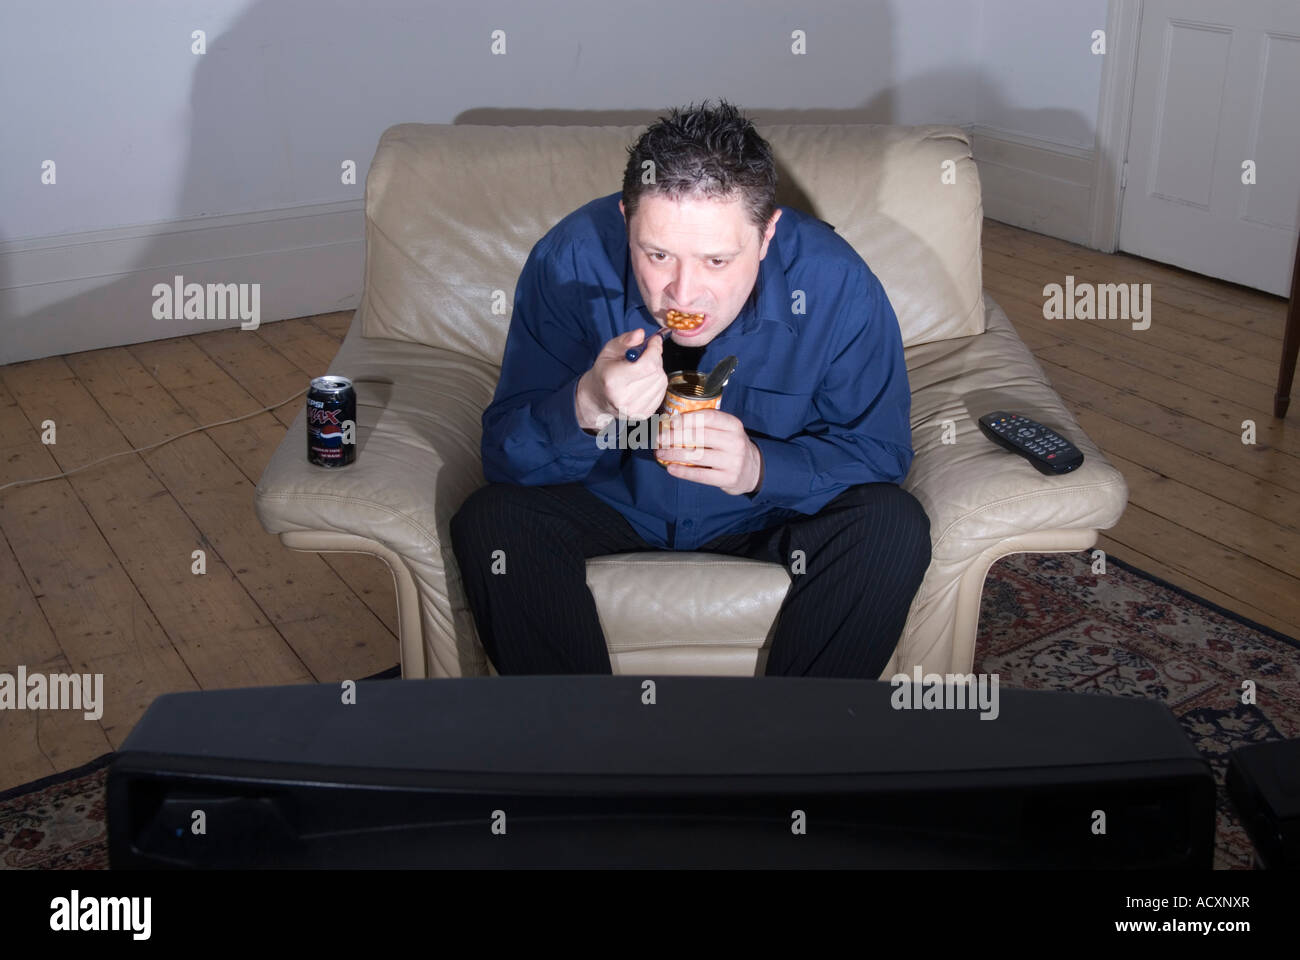 Single man eating dinner in front of television England UK - Stock Image